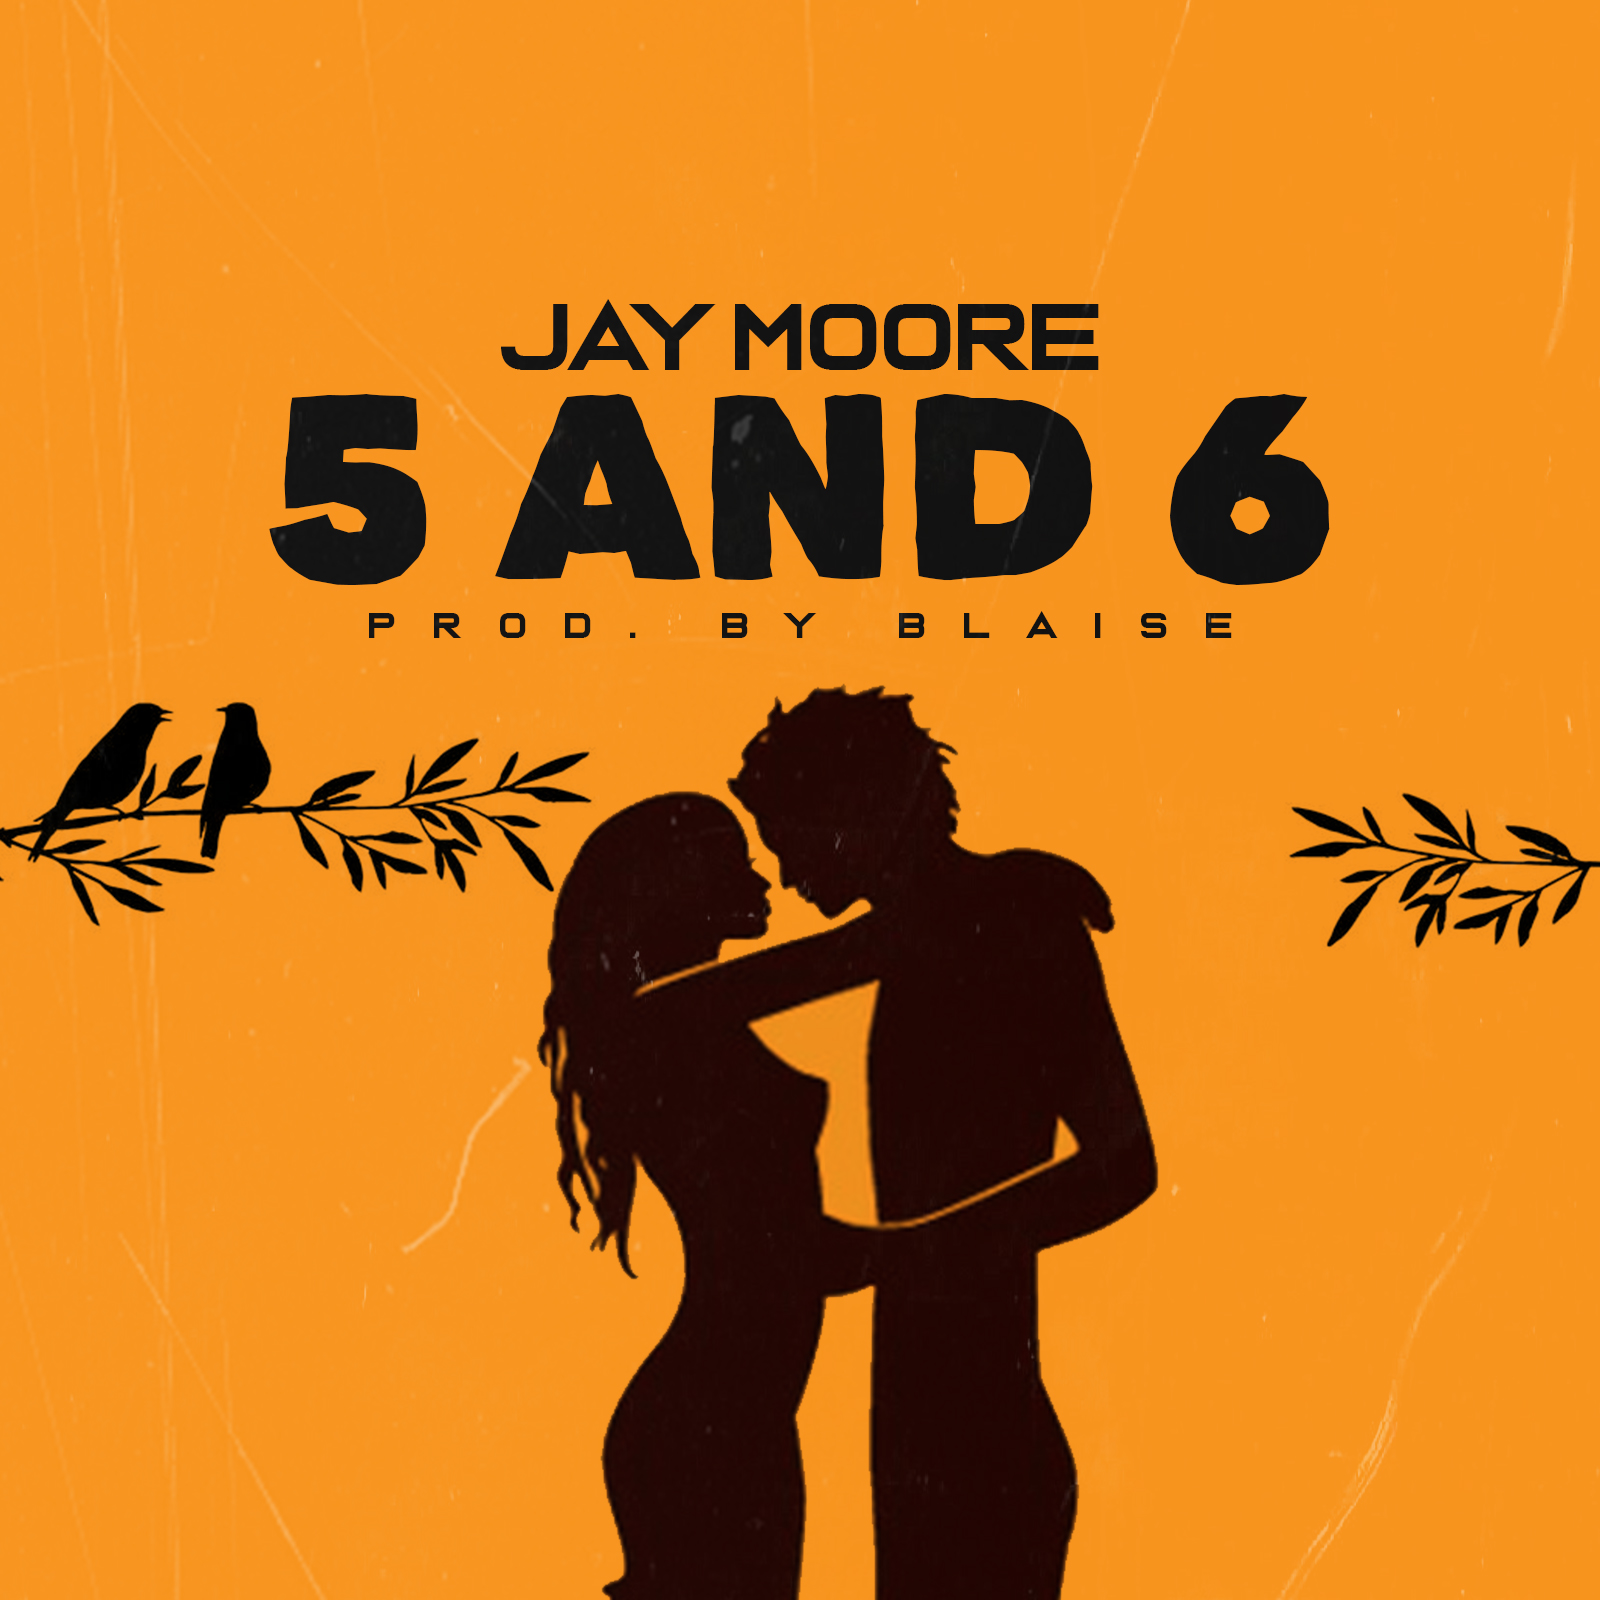 Jay Moore – 5 and 6